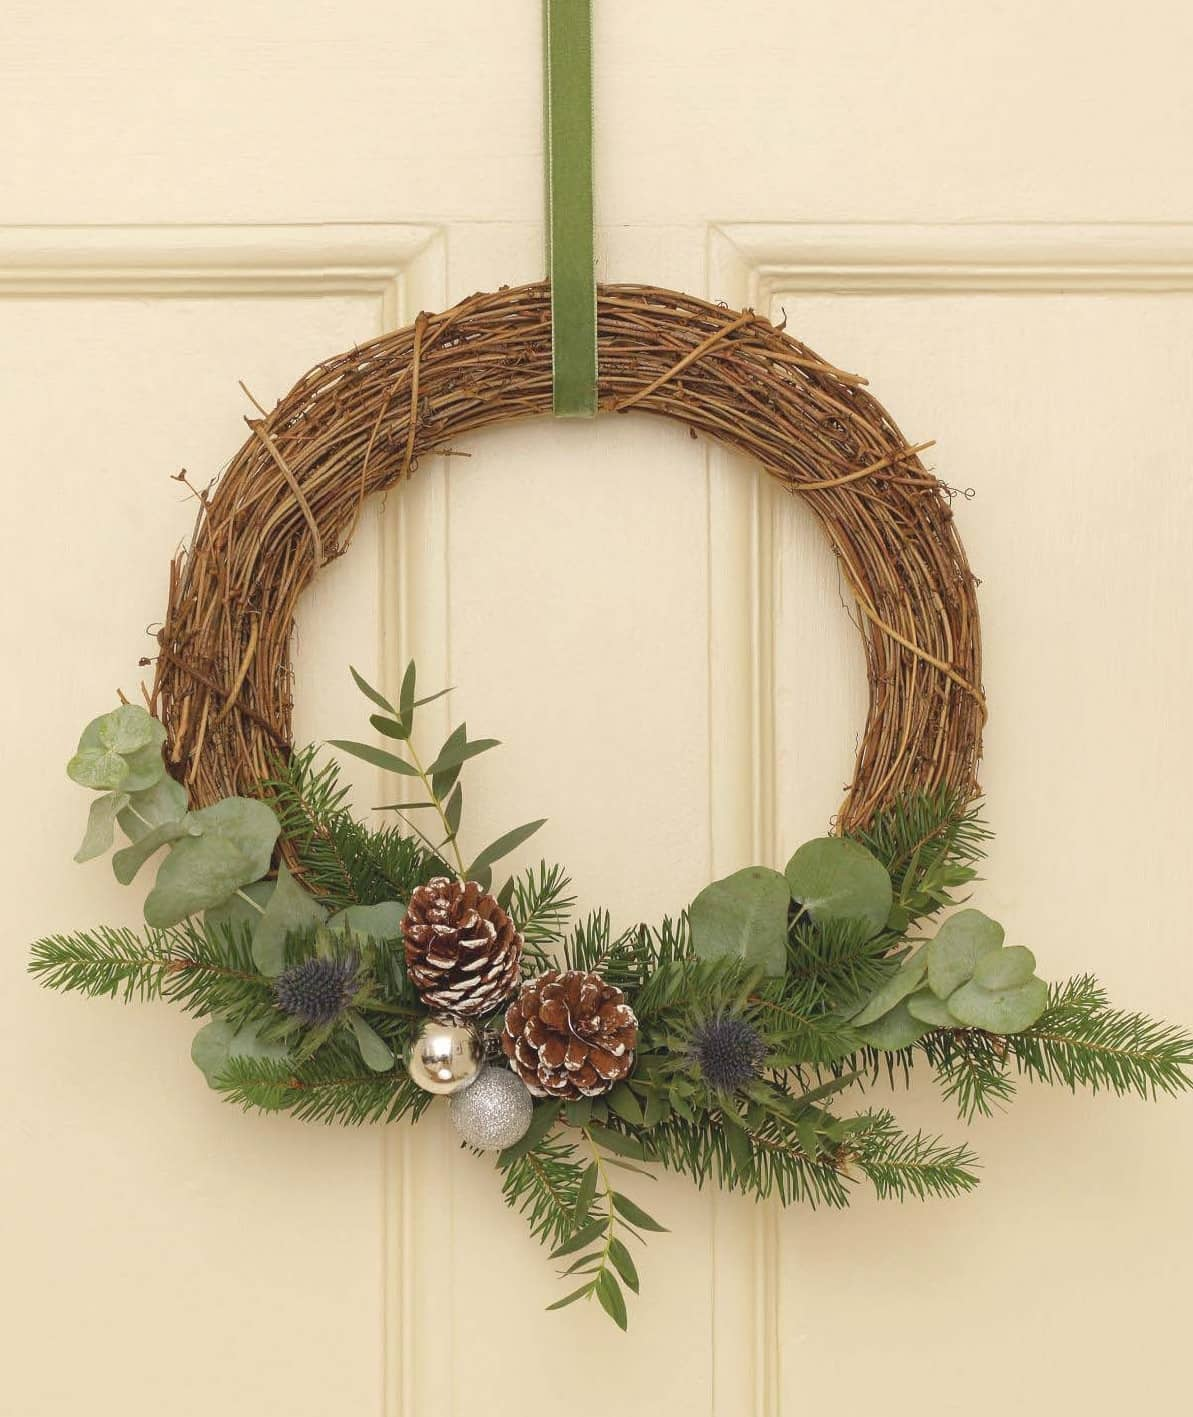 Have A Go At...Making A Wreath